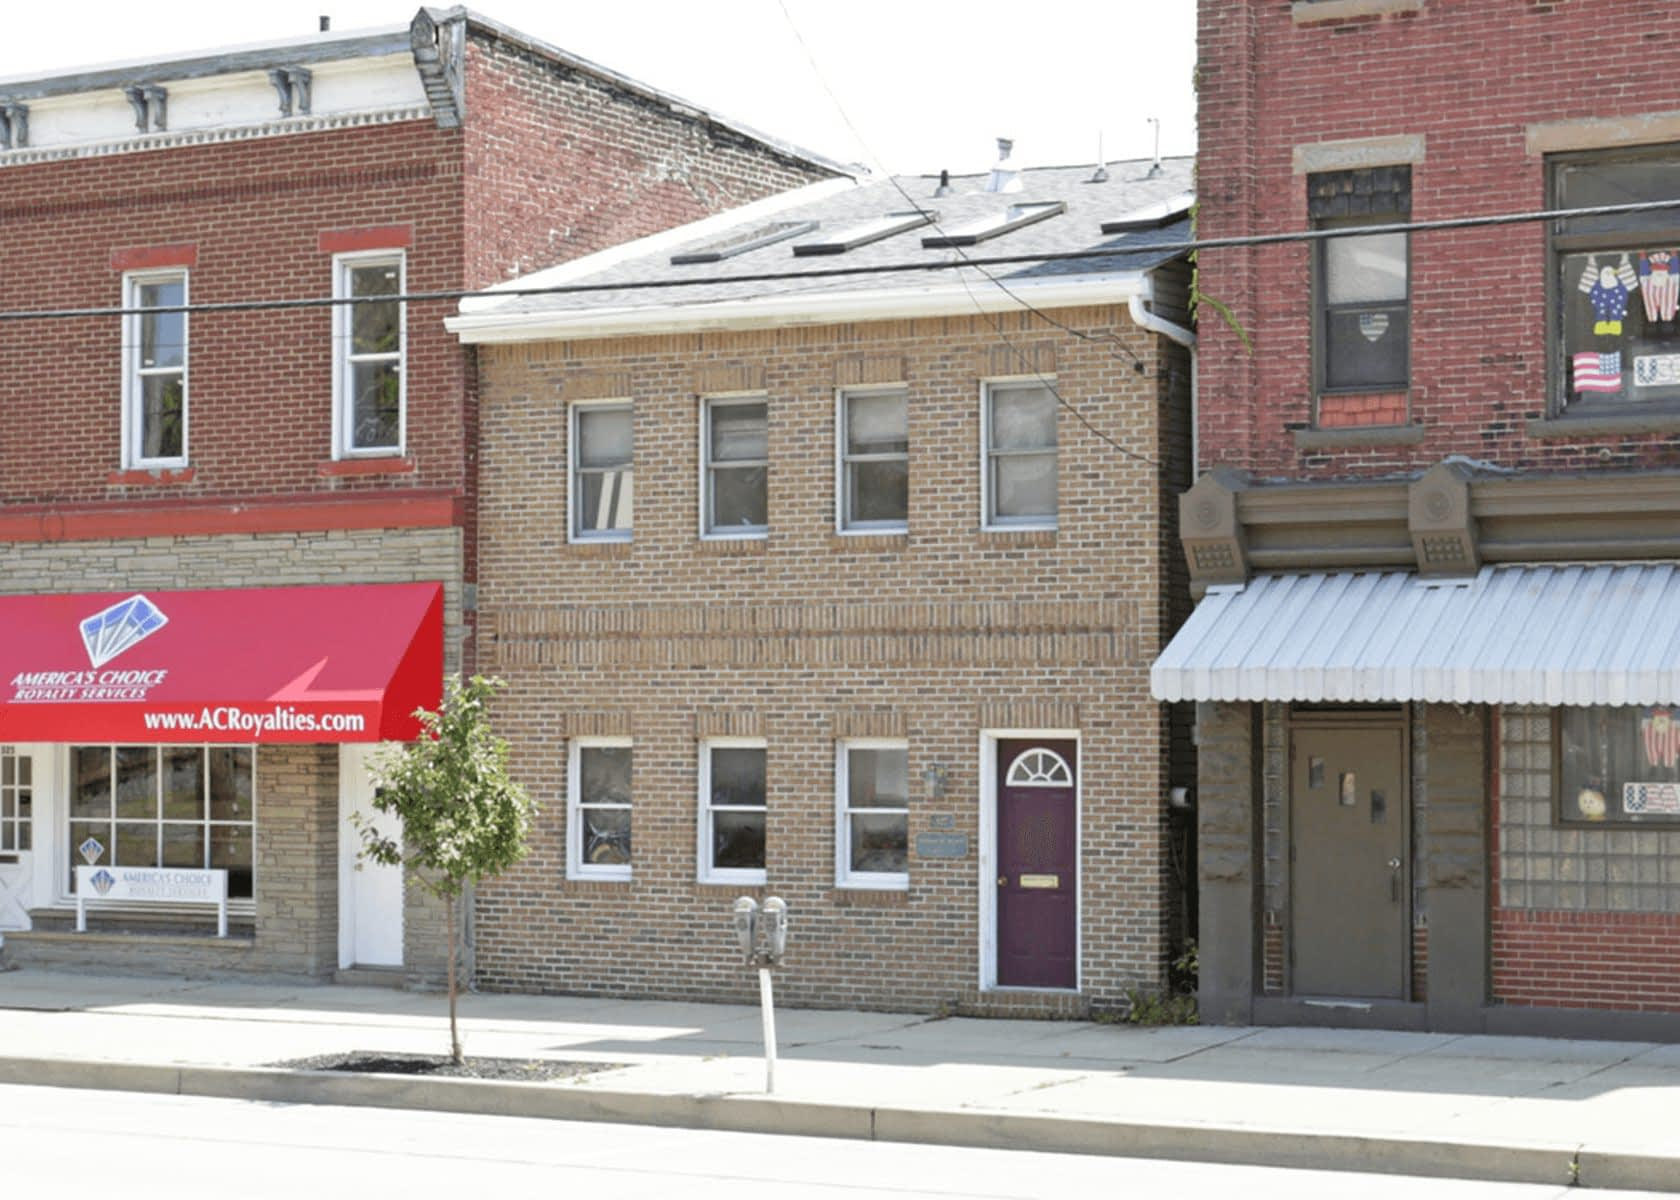 Exterior of 327 West Main Street: Two story brick building